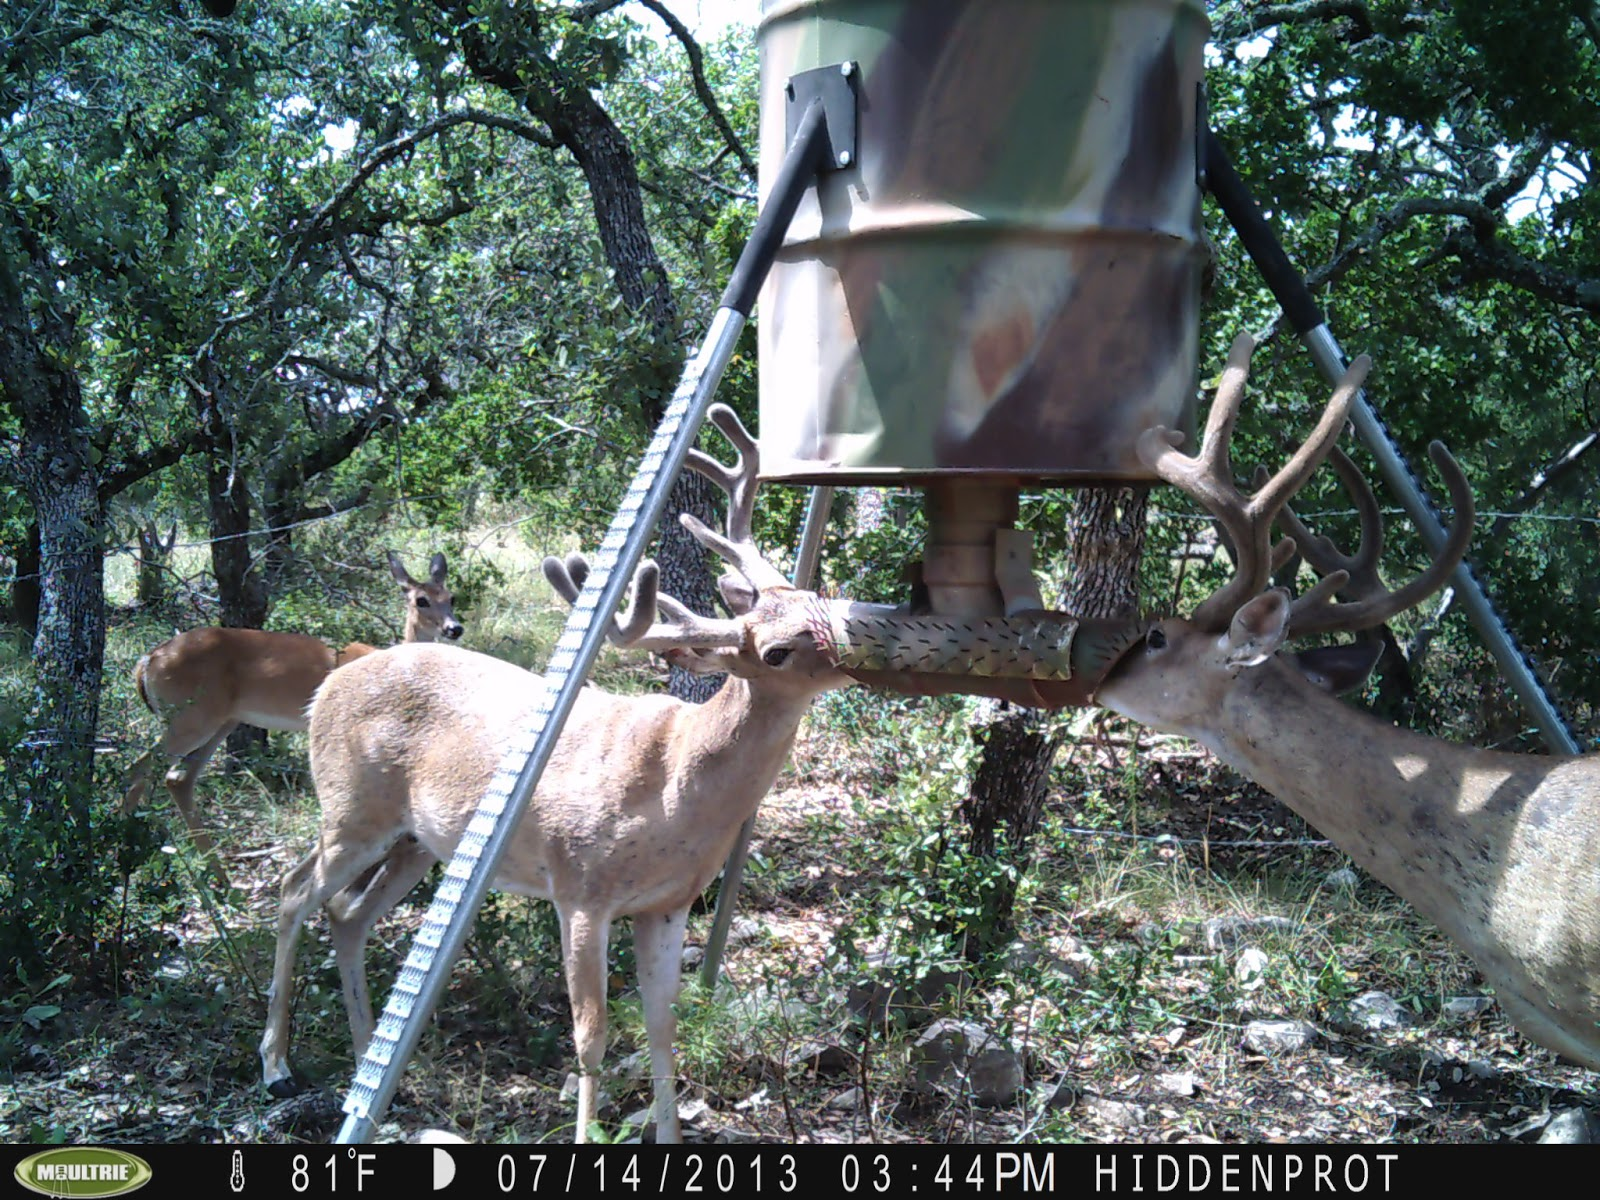 TexasNative00 Hunting and Product Reviews: Trail Camera